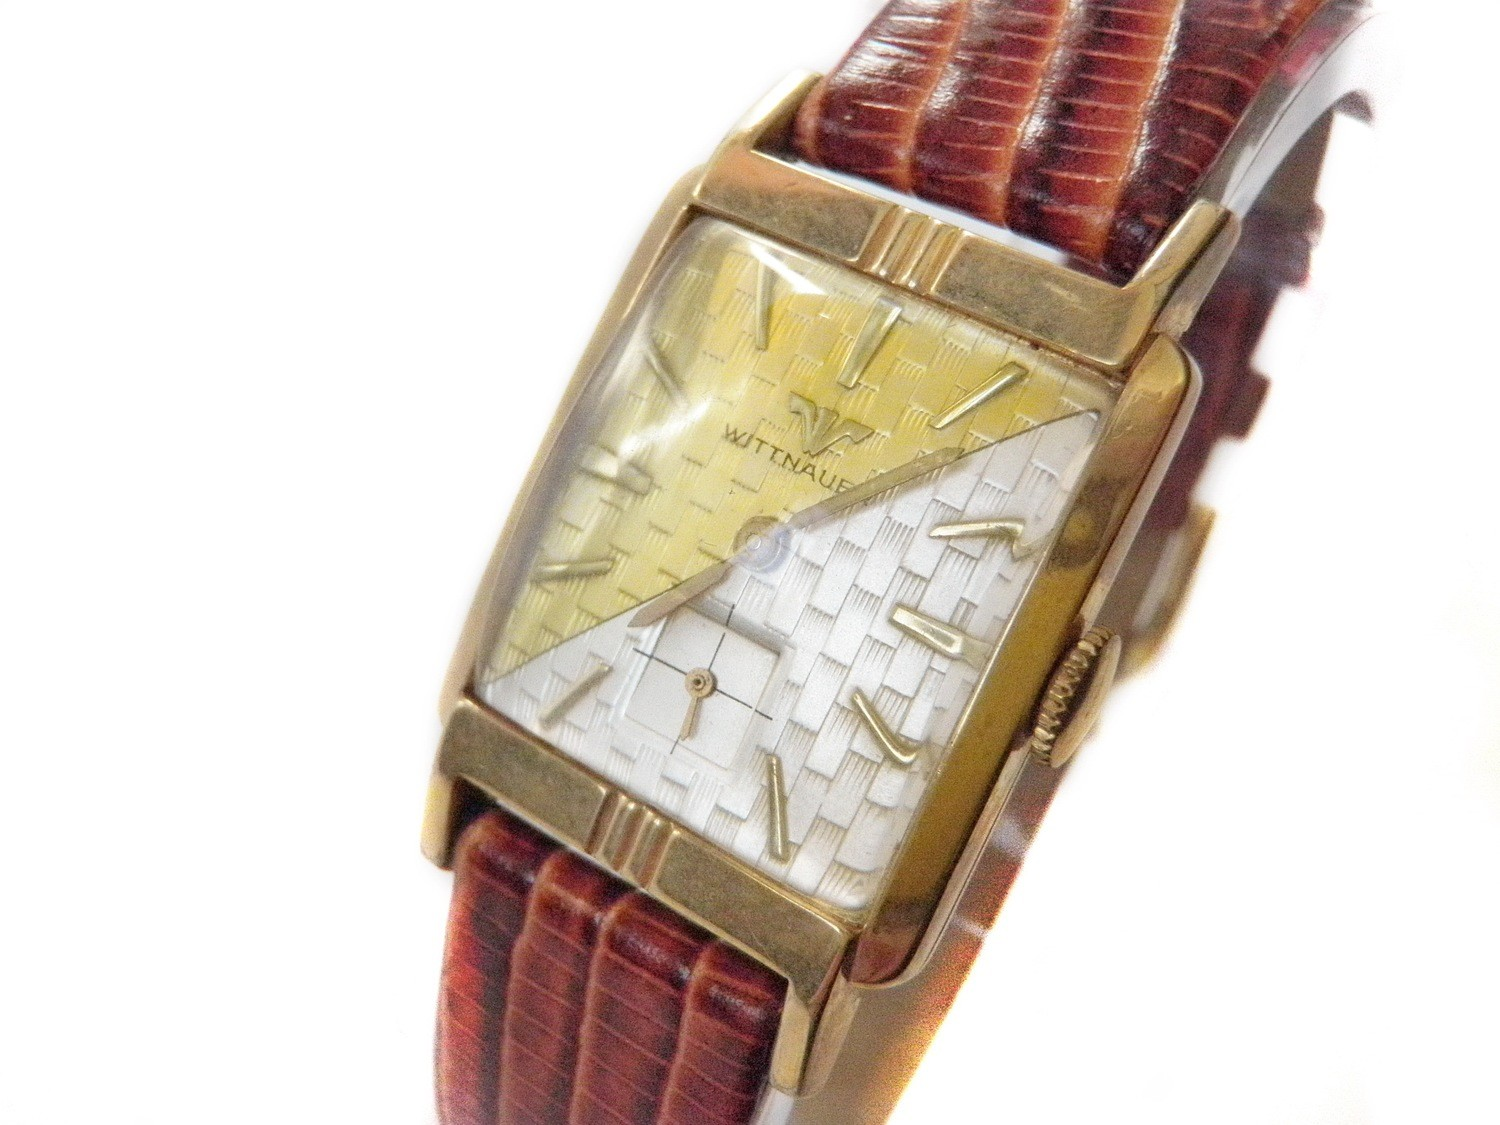 1960's Longines Wittnauer Watch Two Tone Textured Dial